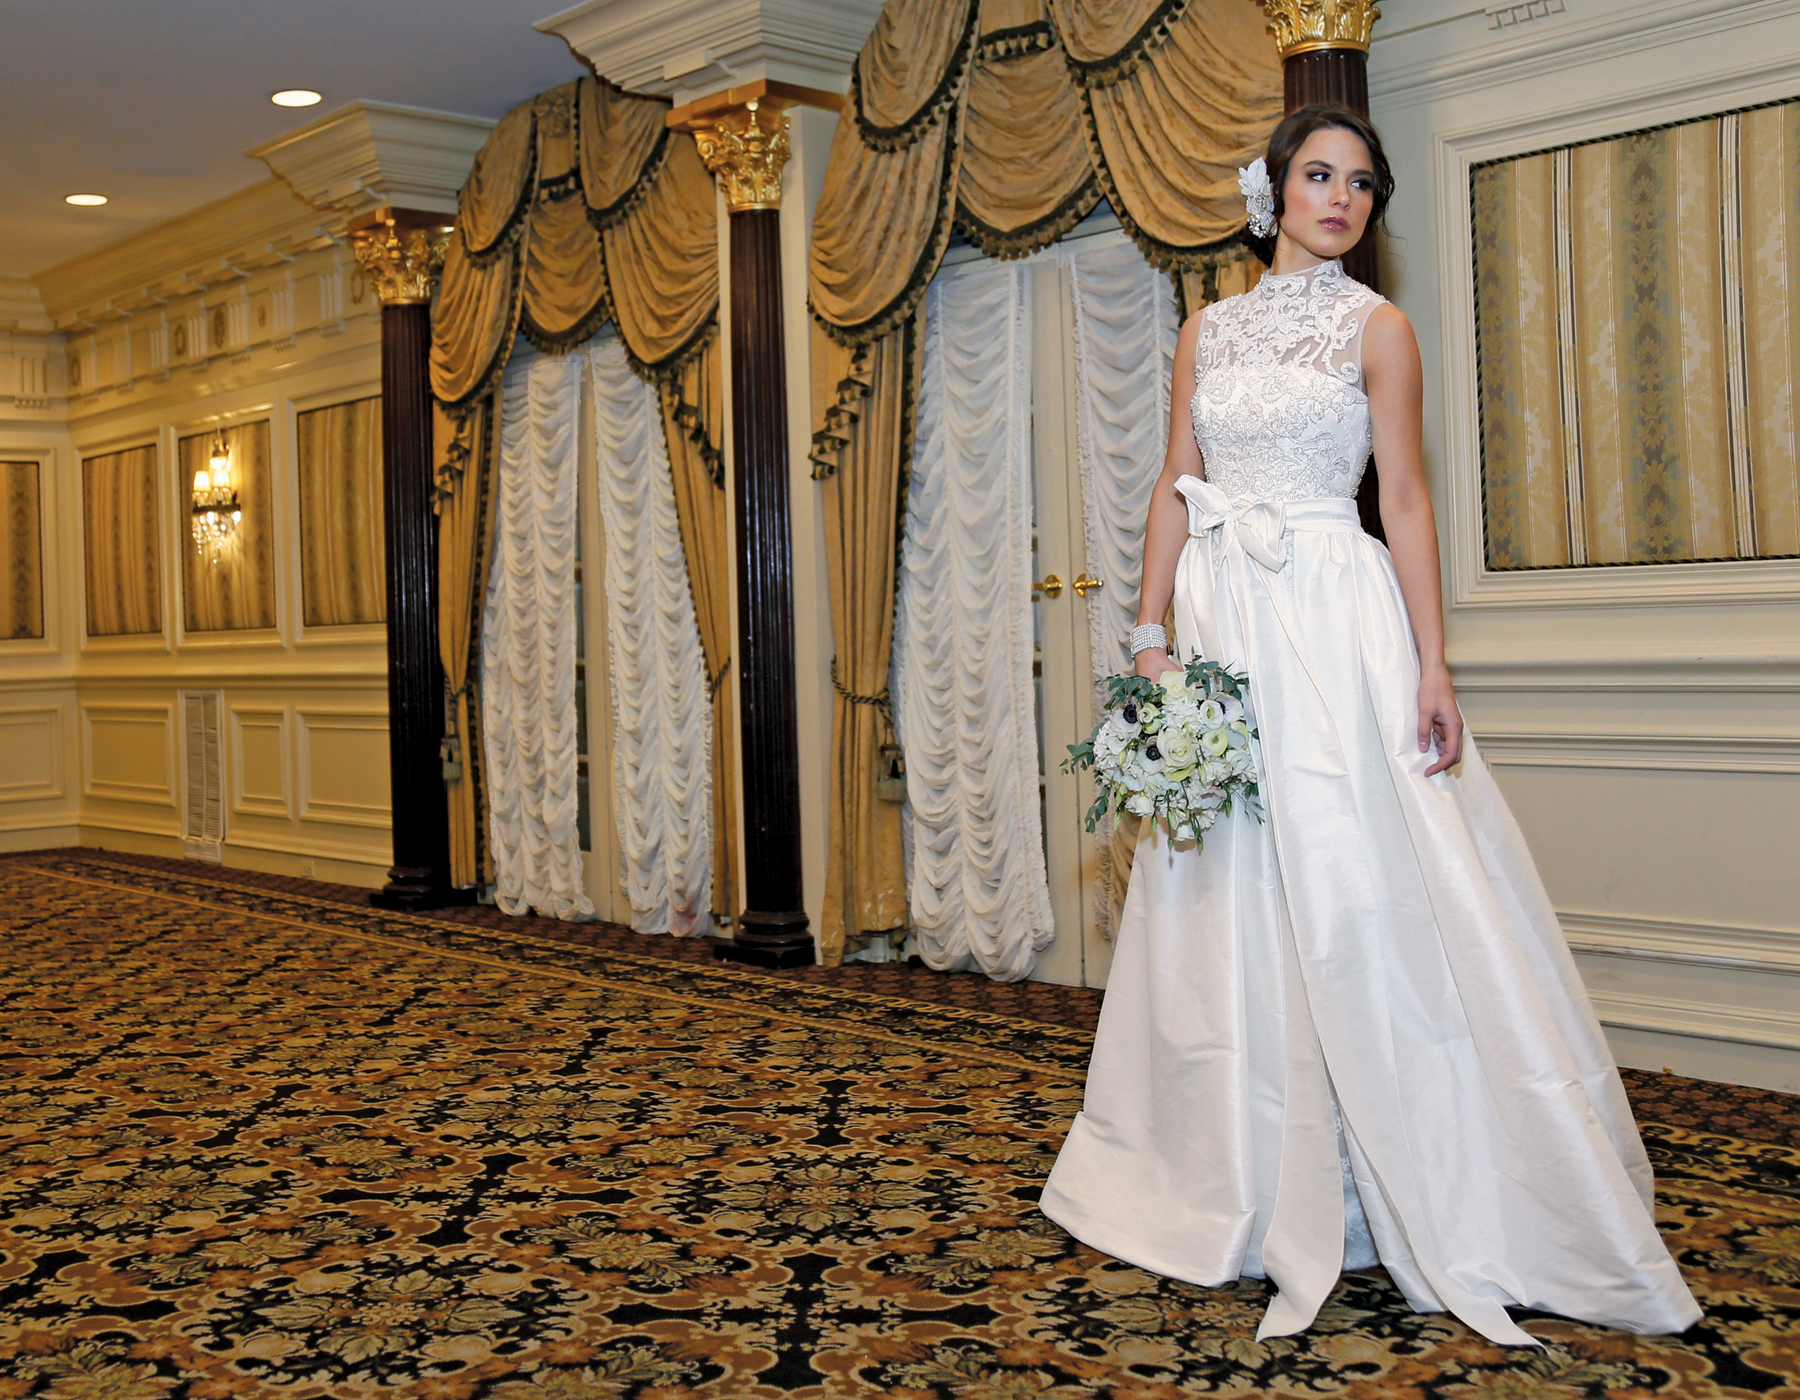 Bridal Wedding Gowns New York, New Jersey - Fabrics